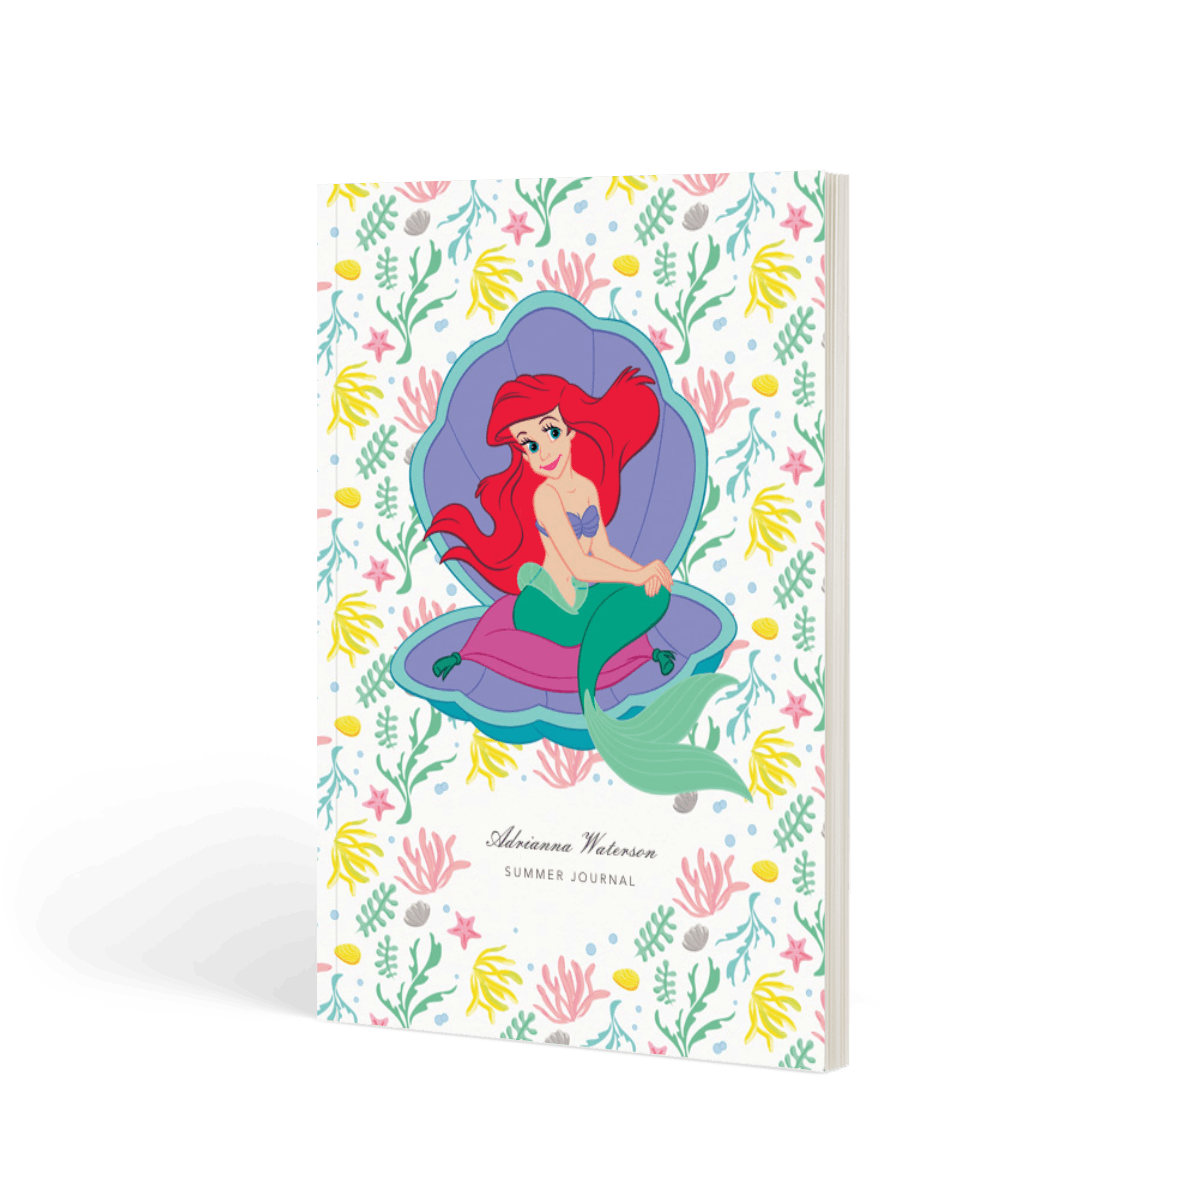 Https%3a%2f%2fwww.papier.com%2fproduct image%2f54120%2f6%2fthe little mermaid 13018 front 1542292248.png?ixlib=rb 1.1